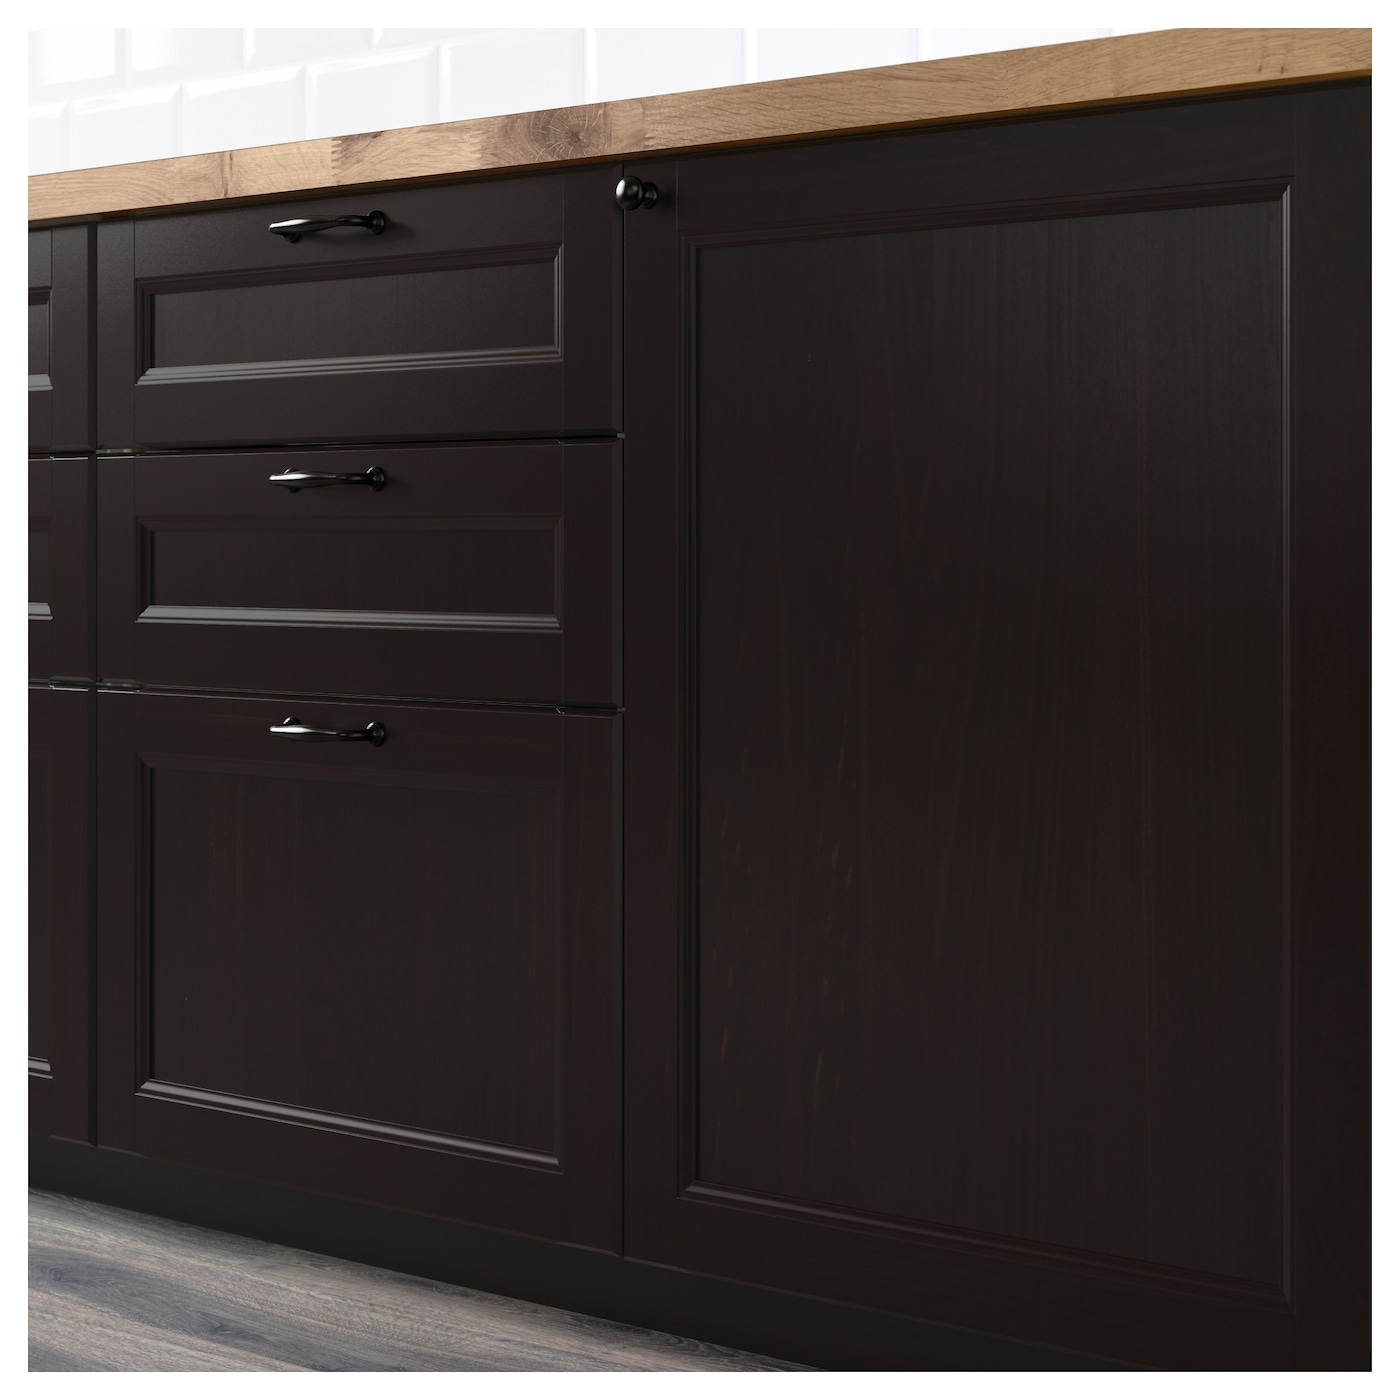 ikea cabinet fronts laxarby drawer front black brown 60x40 cm ikea 17558